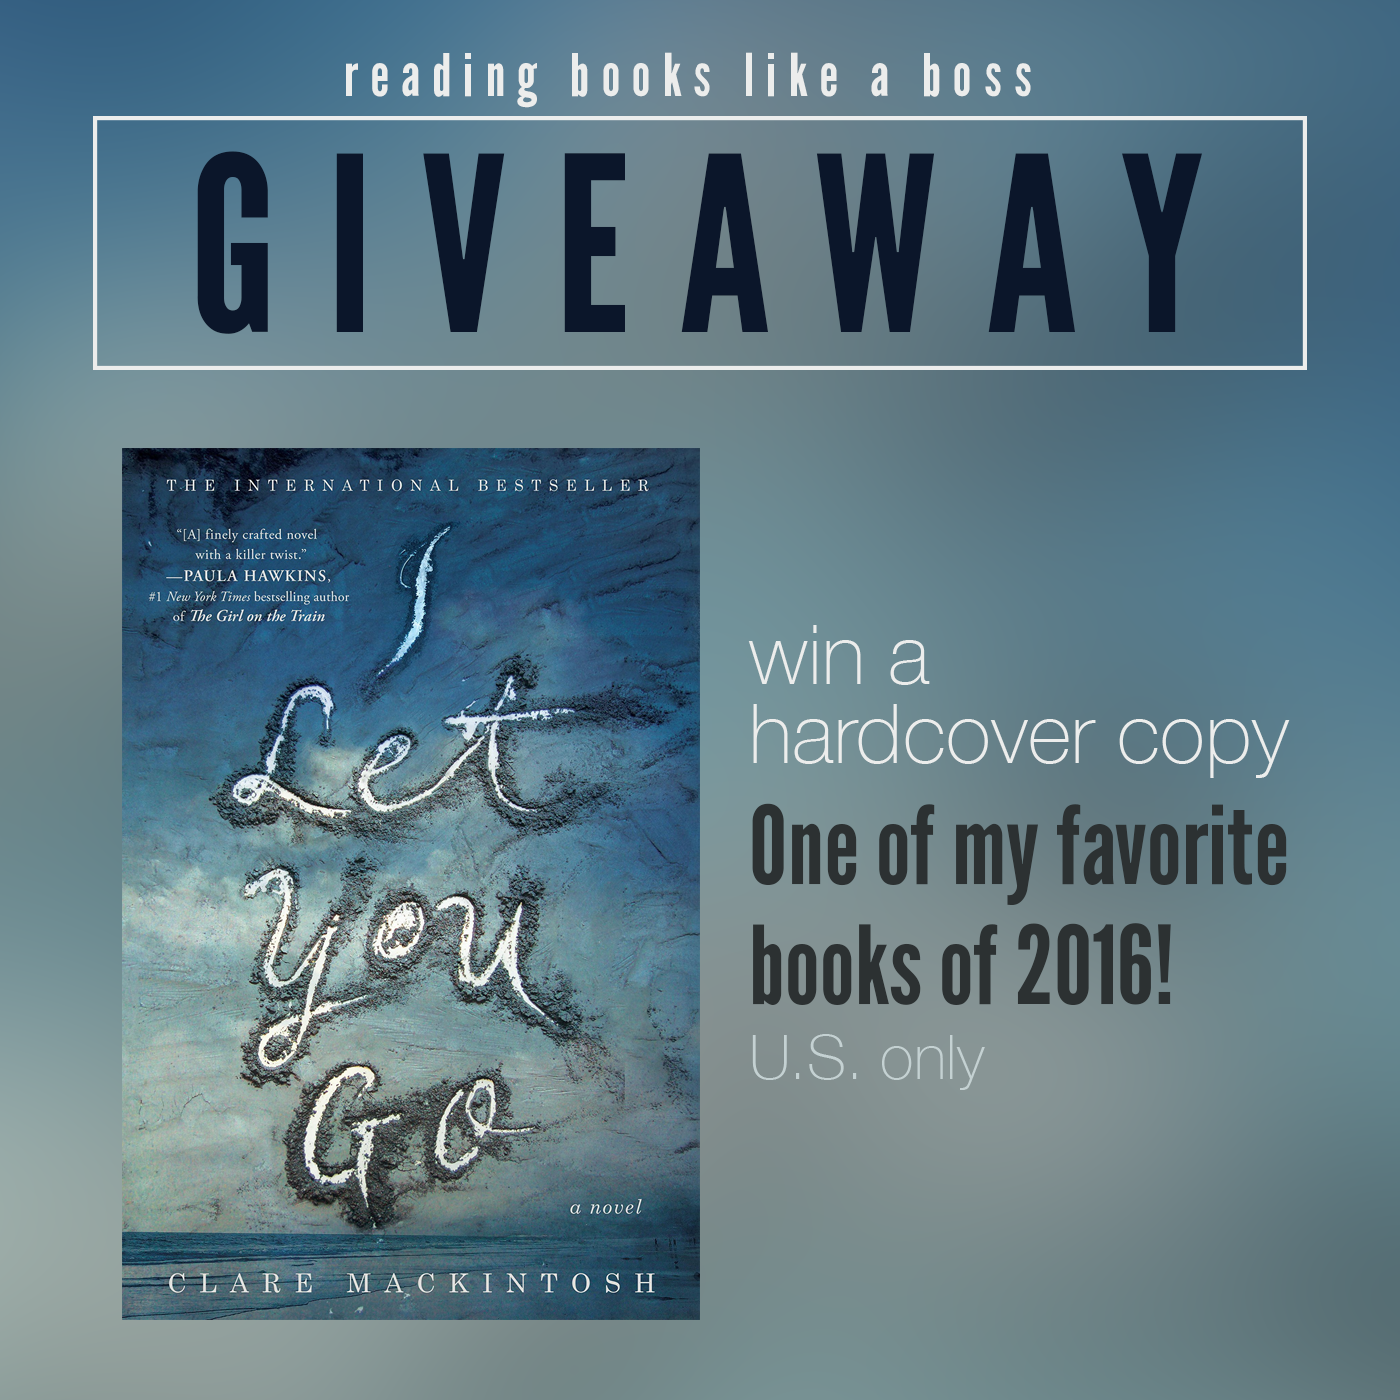 Giveaway - I Let You Go by Clare Mackintosh